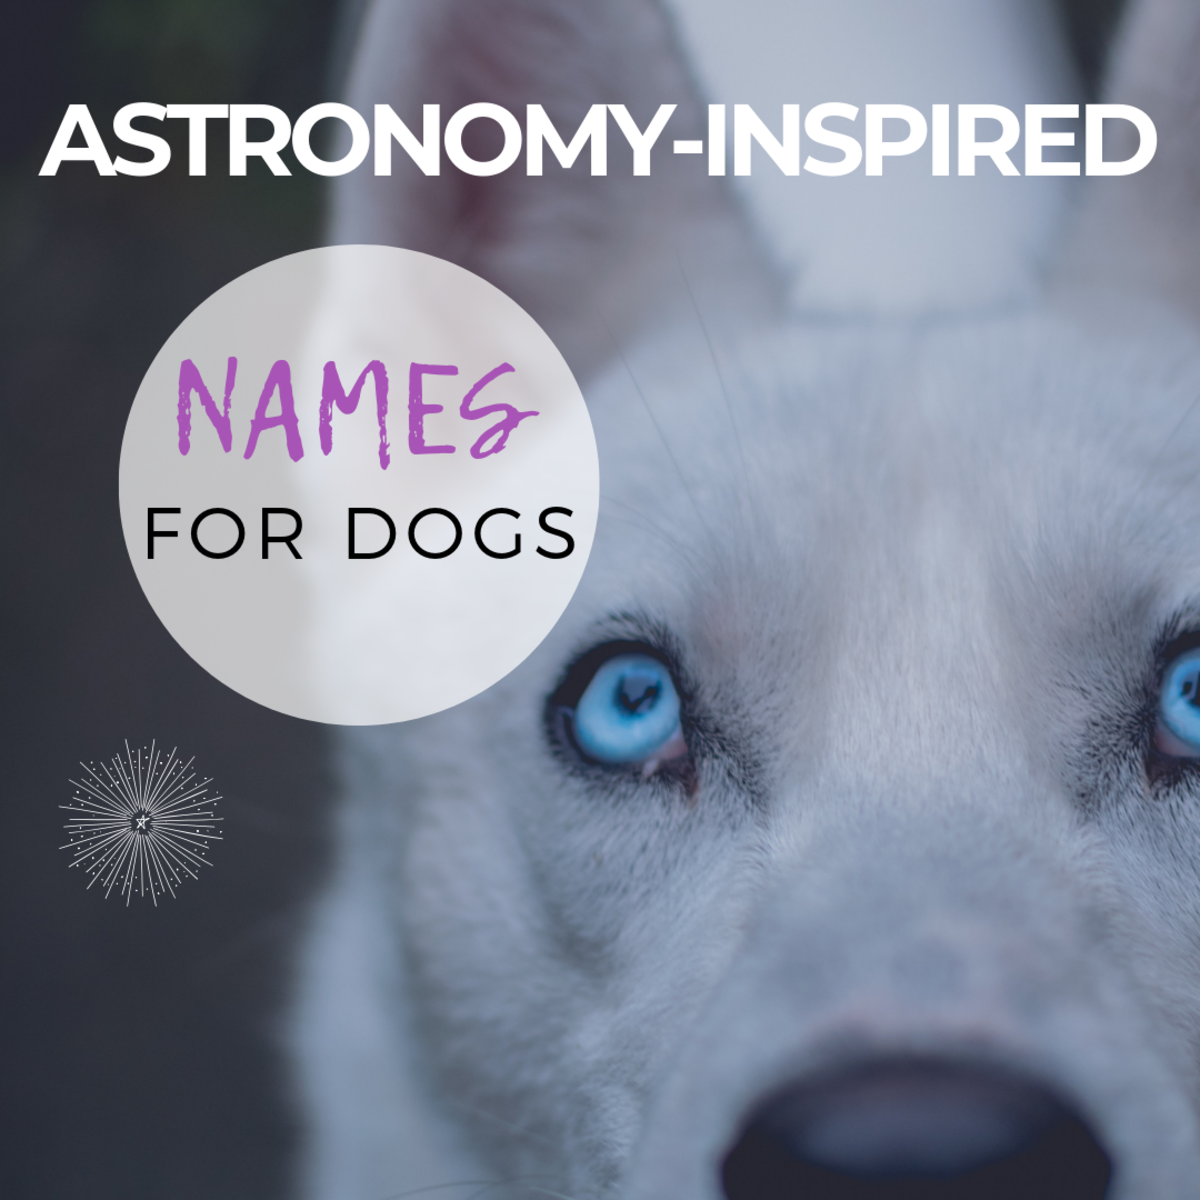 Astronomy-Inspired Names for Dogs